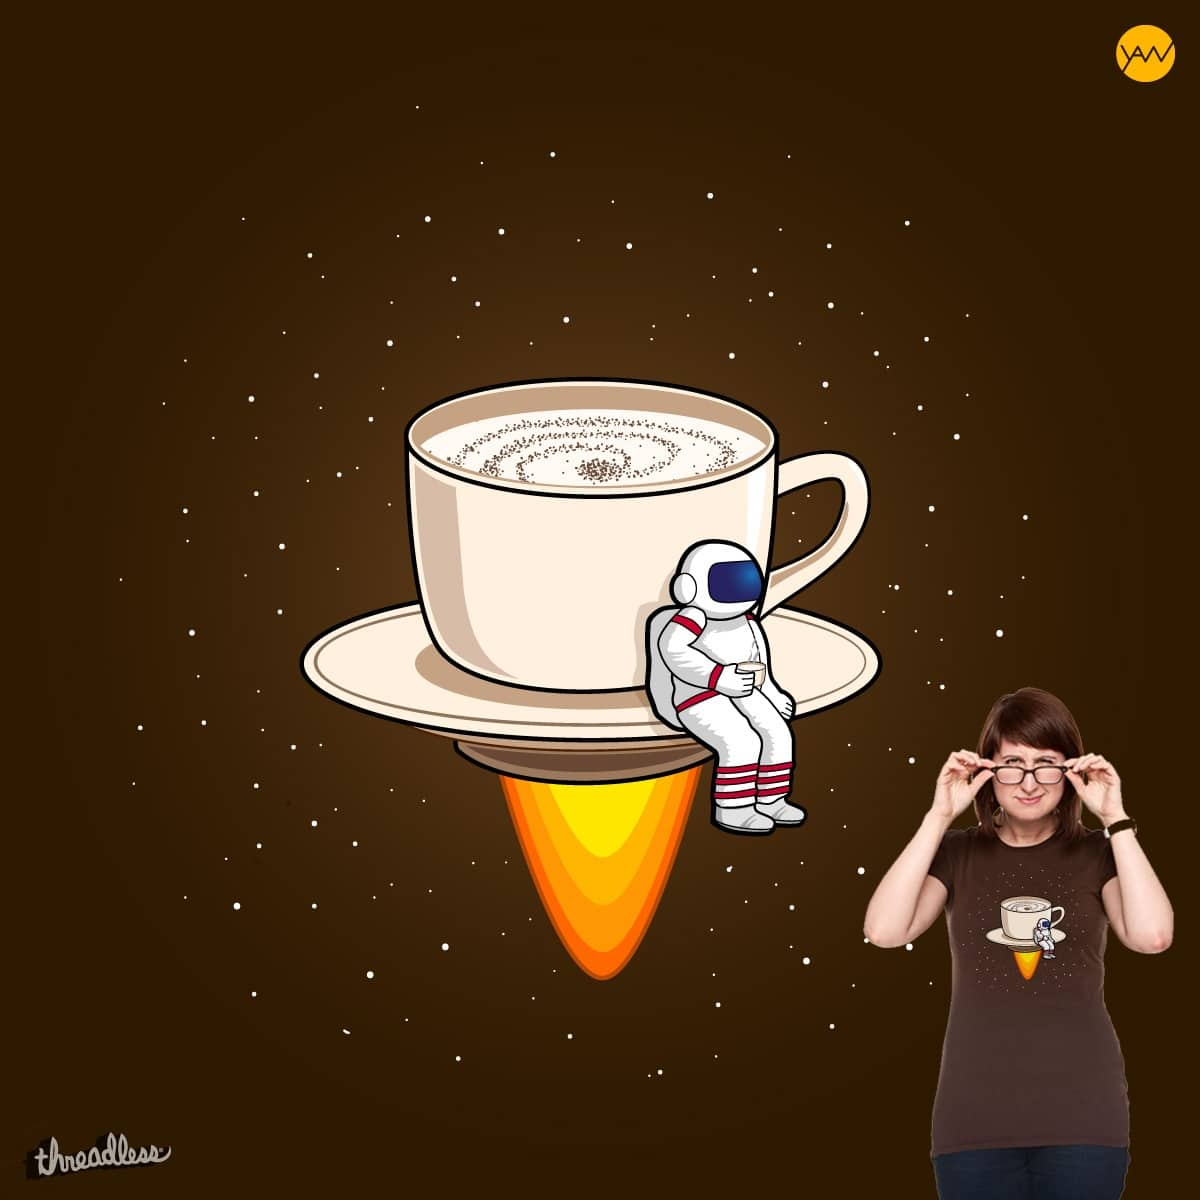 The Milky way by wimadeputra on Threadless